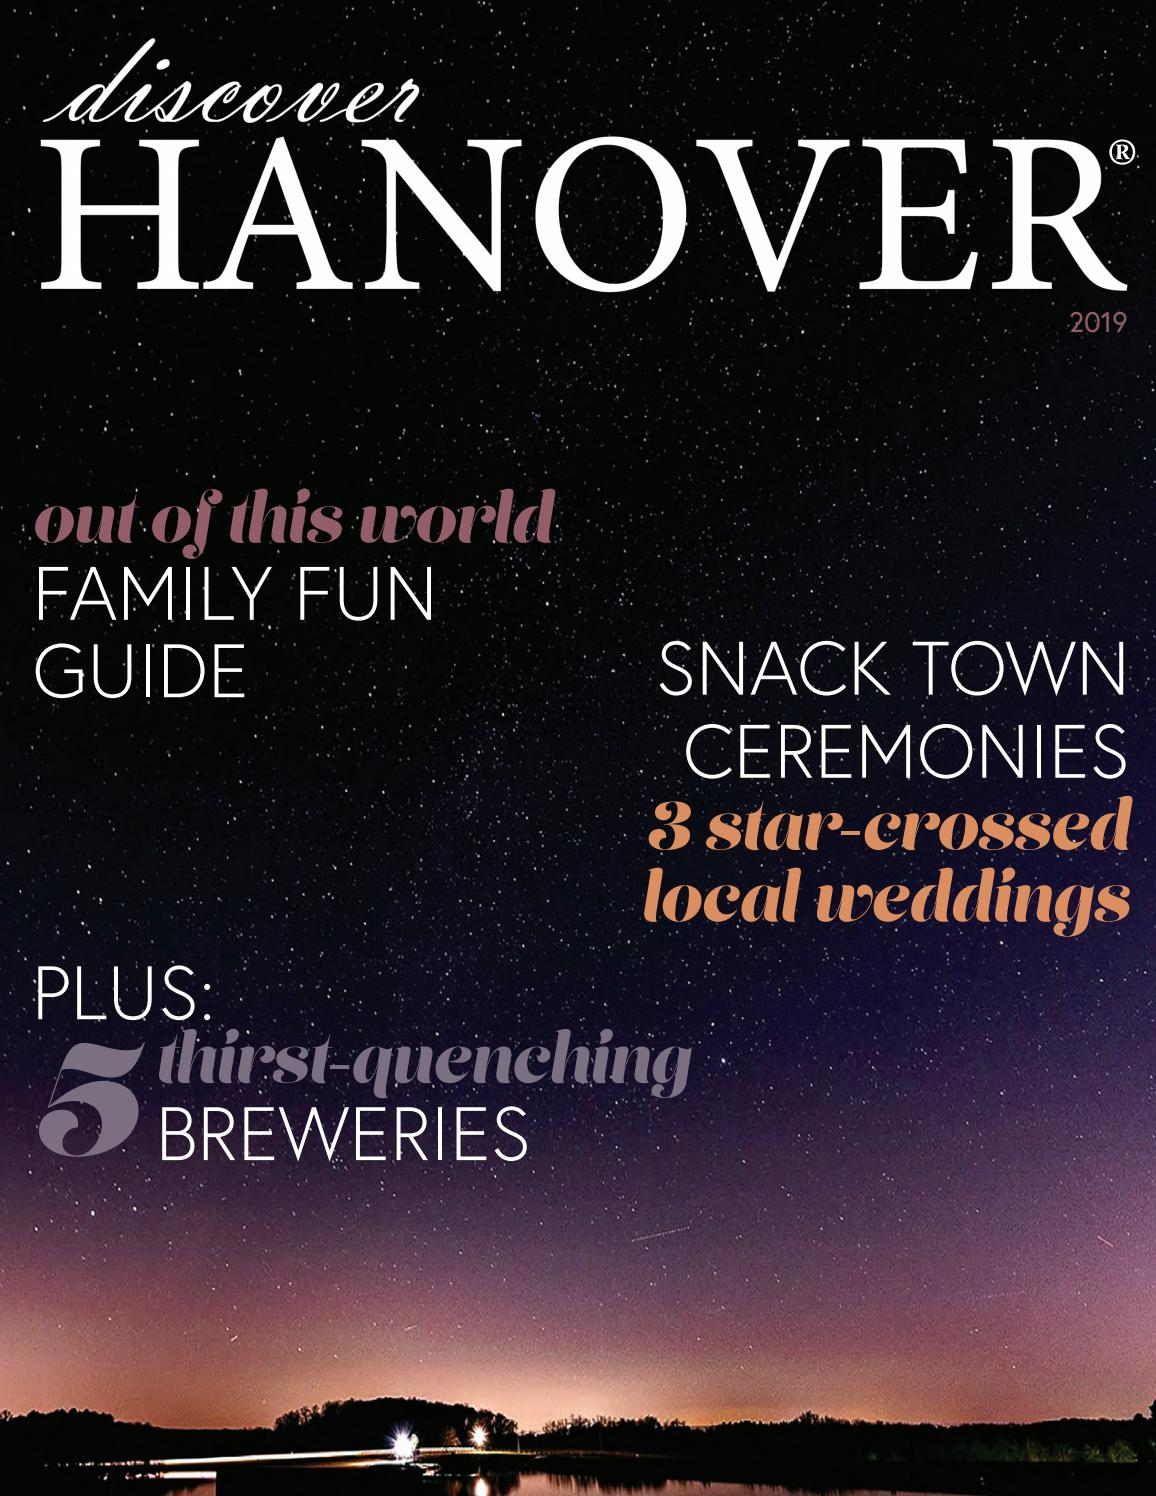 La Cucina Restaurant Hanover Pa 2019 Discover Hanover Magazine By Hanover Area Chamber Of